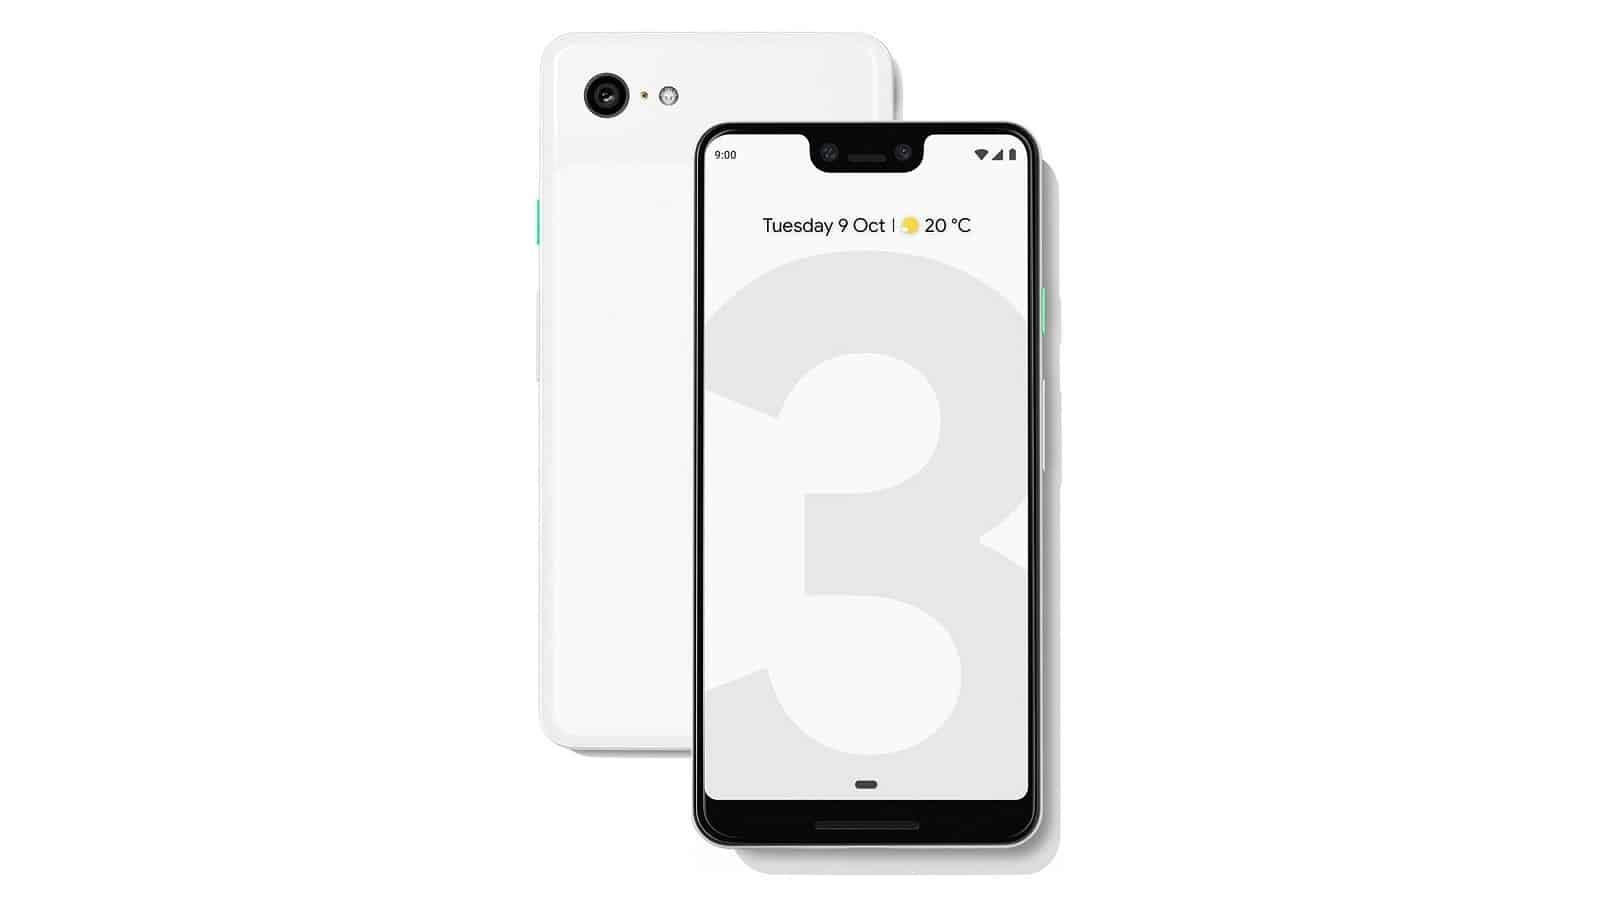 New Google Pixel 3 XL Render Surfaces With A Stock